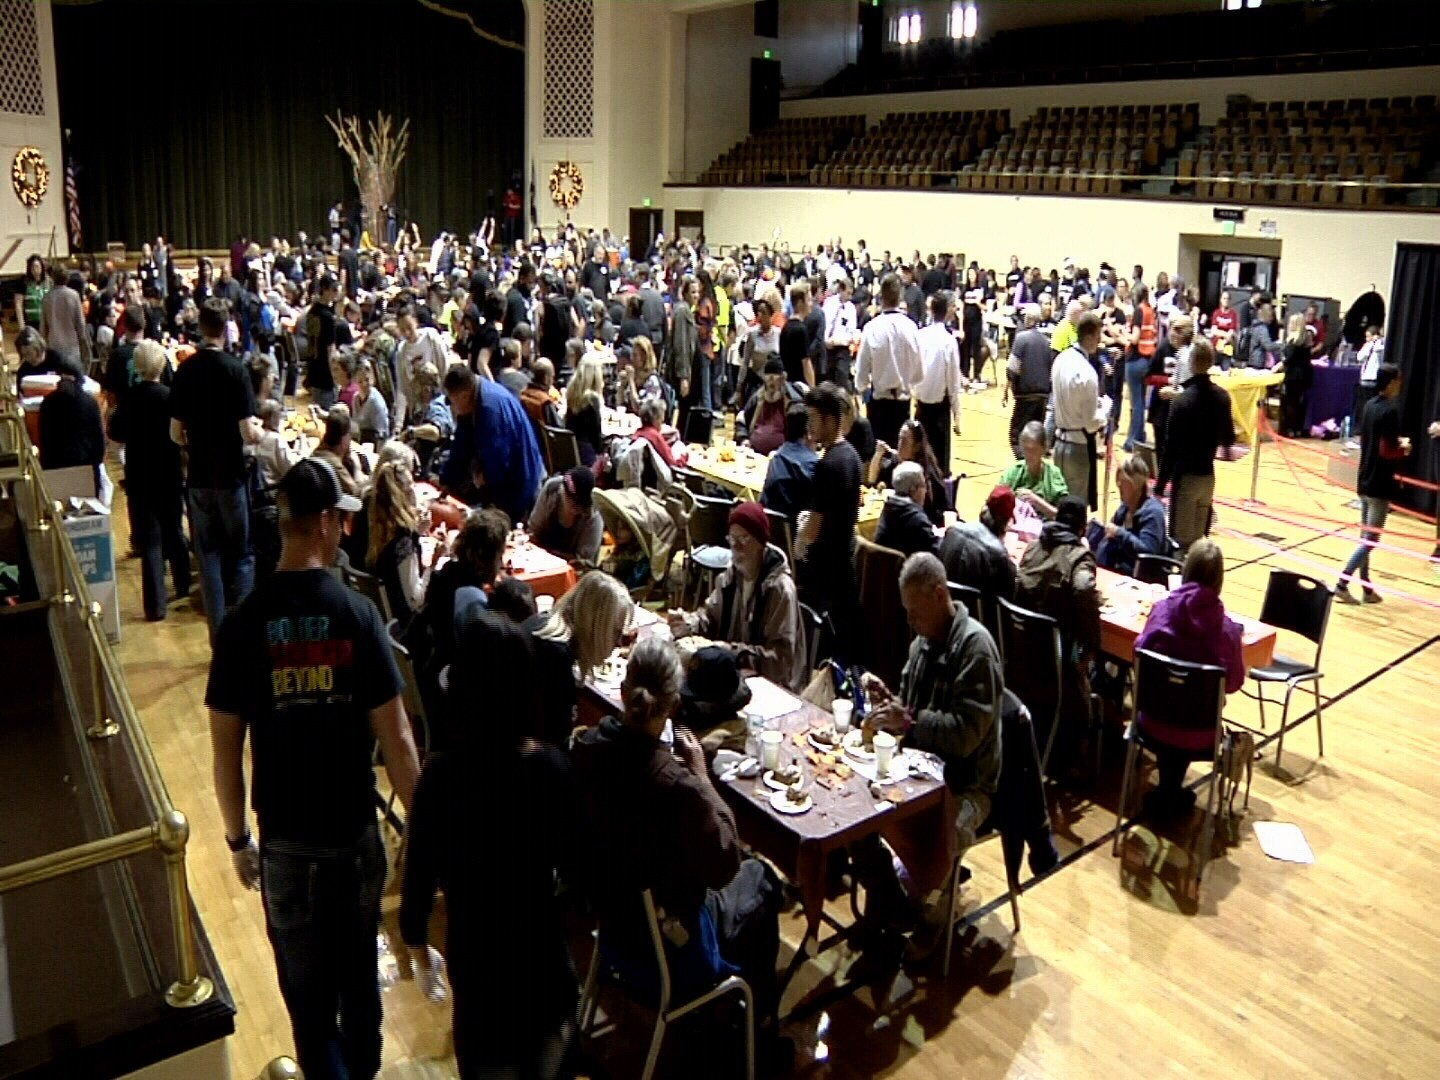 Volunteers servers attend to the estimated 1,000 guests who attended the Springs Rescue Mission Thanksgiving meal